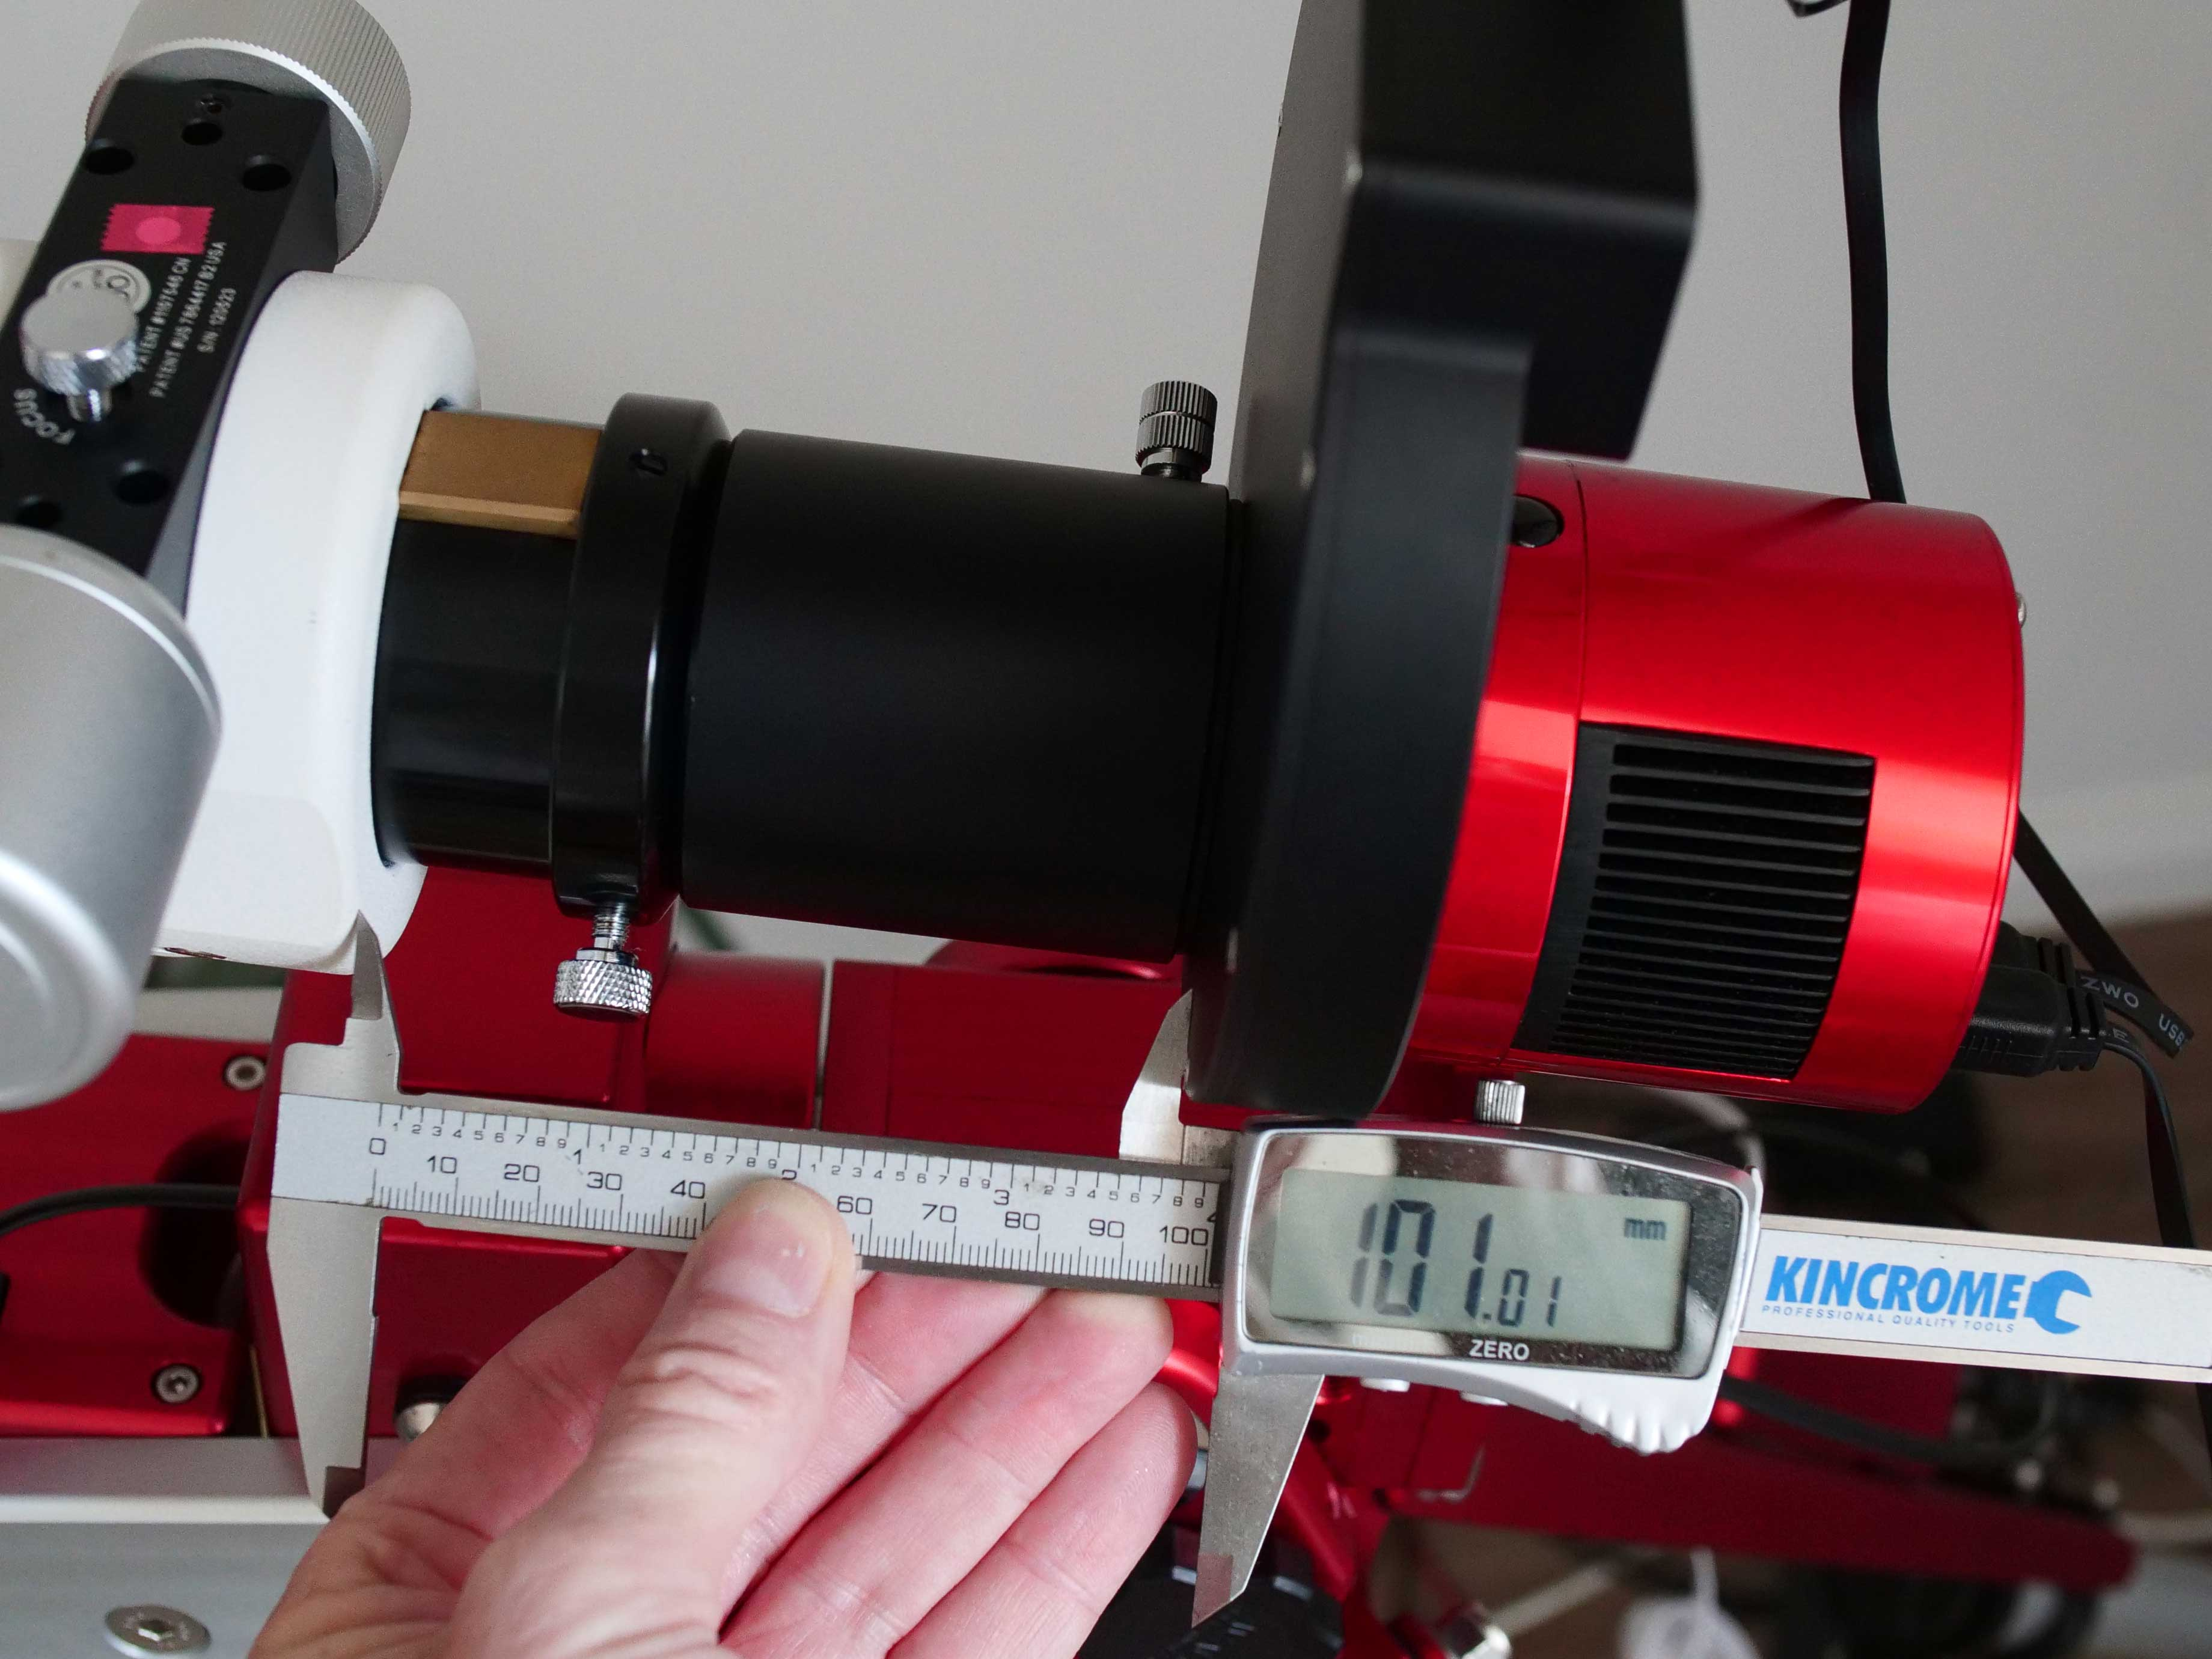 Measuring the camera distance to get approximate focus for next time